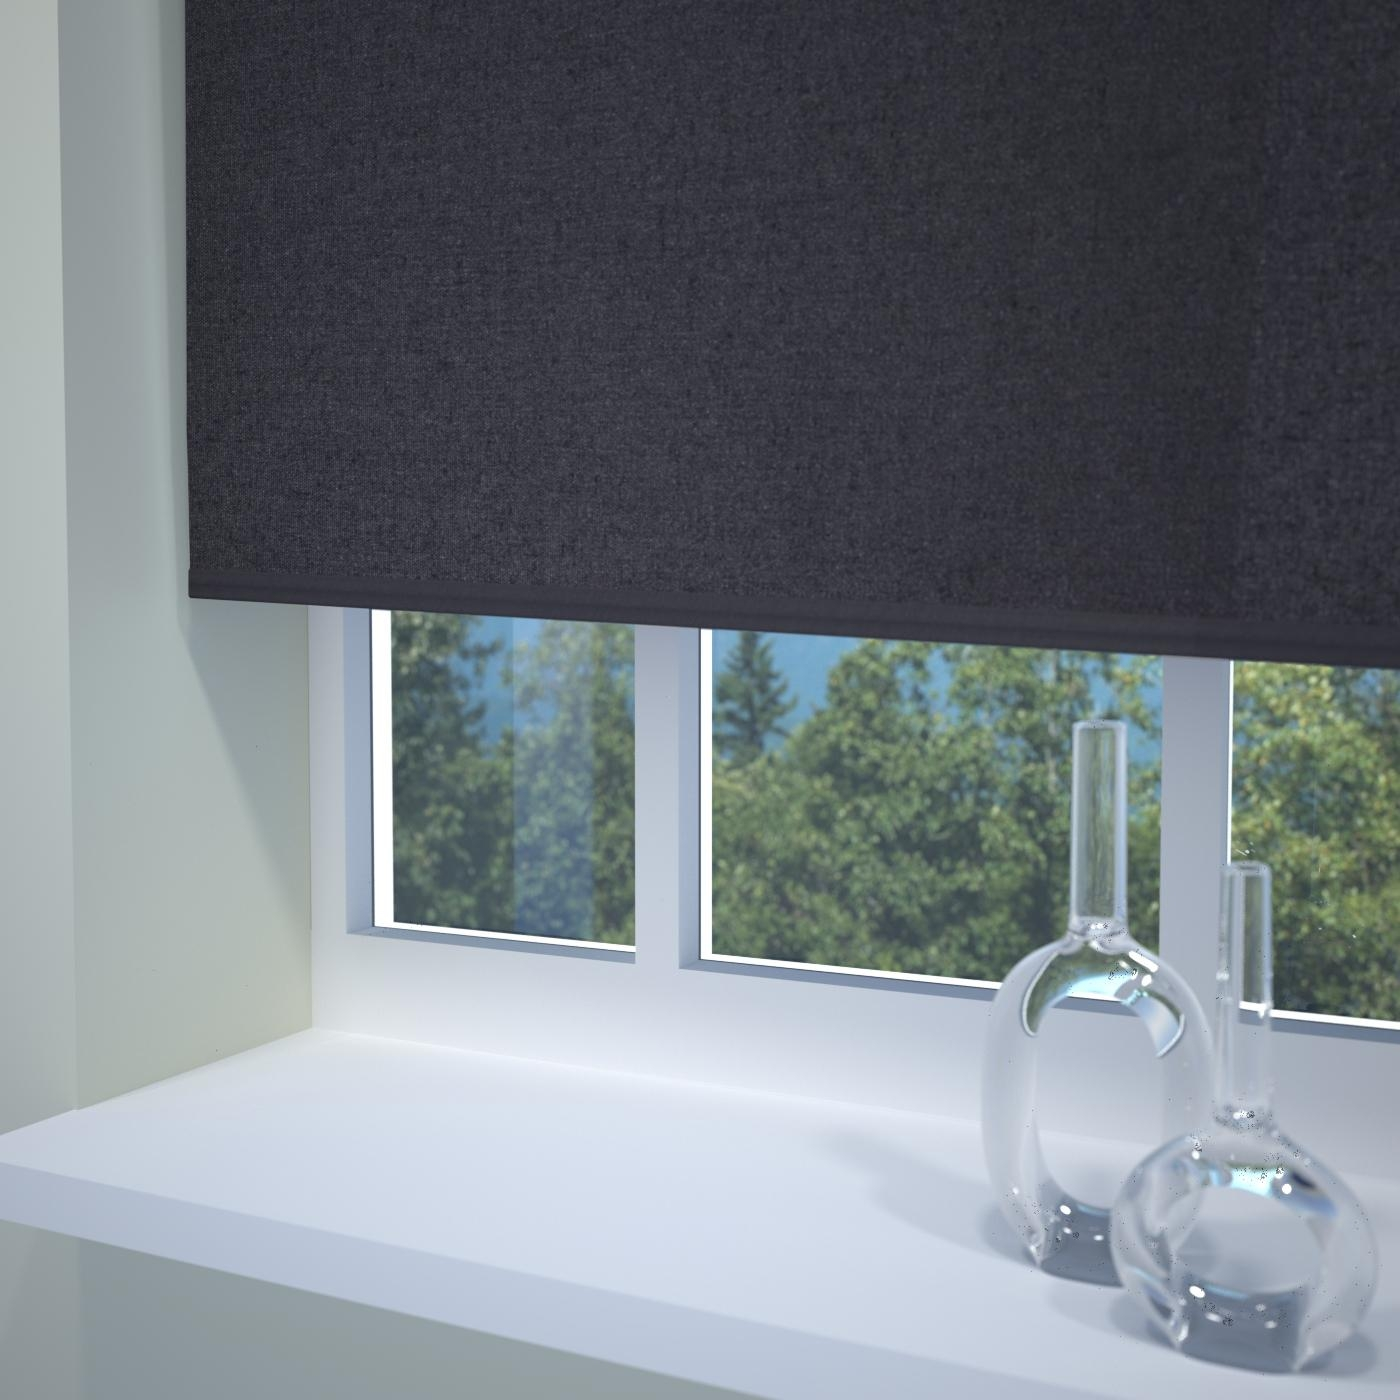 Kensington Plain Roller Blind Noir Free Uk Delivery Terrys Fabrics With Regard To Plain Roller Blinds (Image 4 of 15)